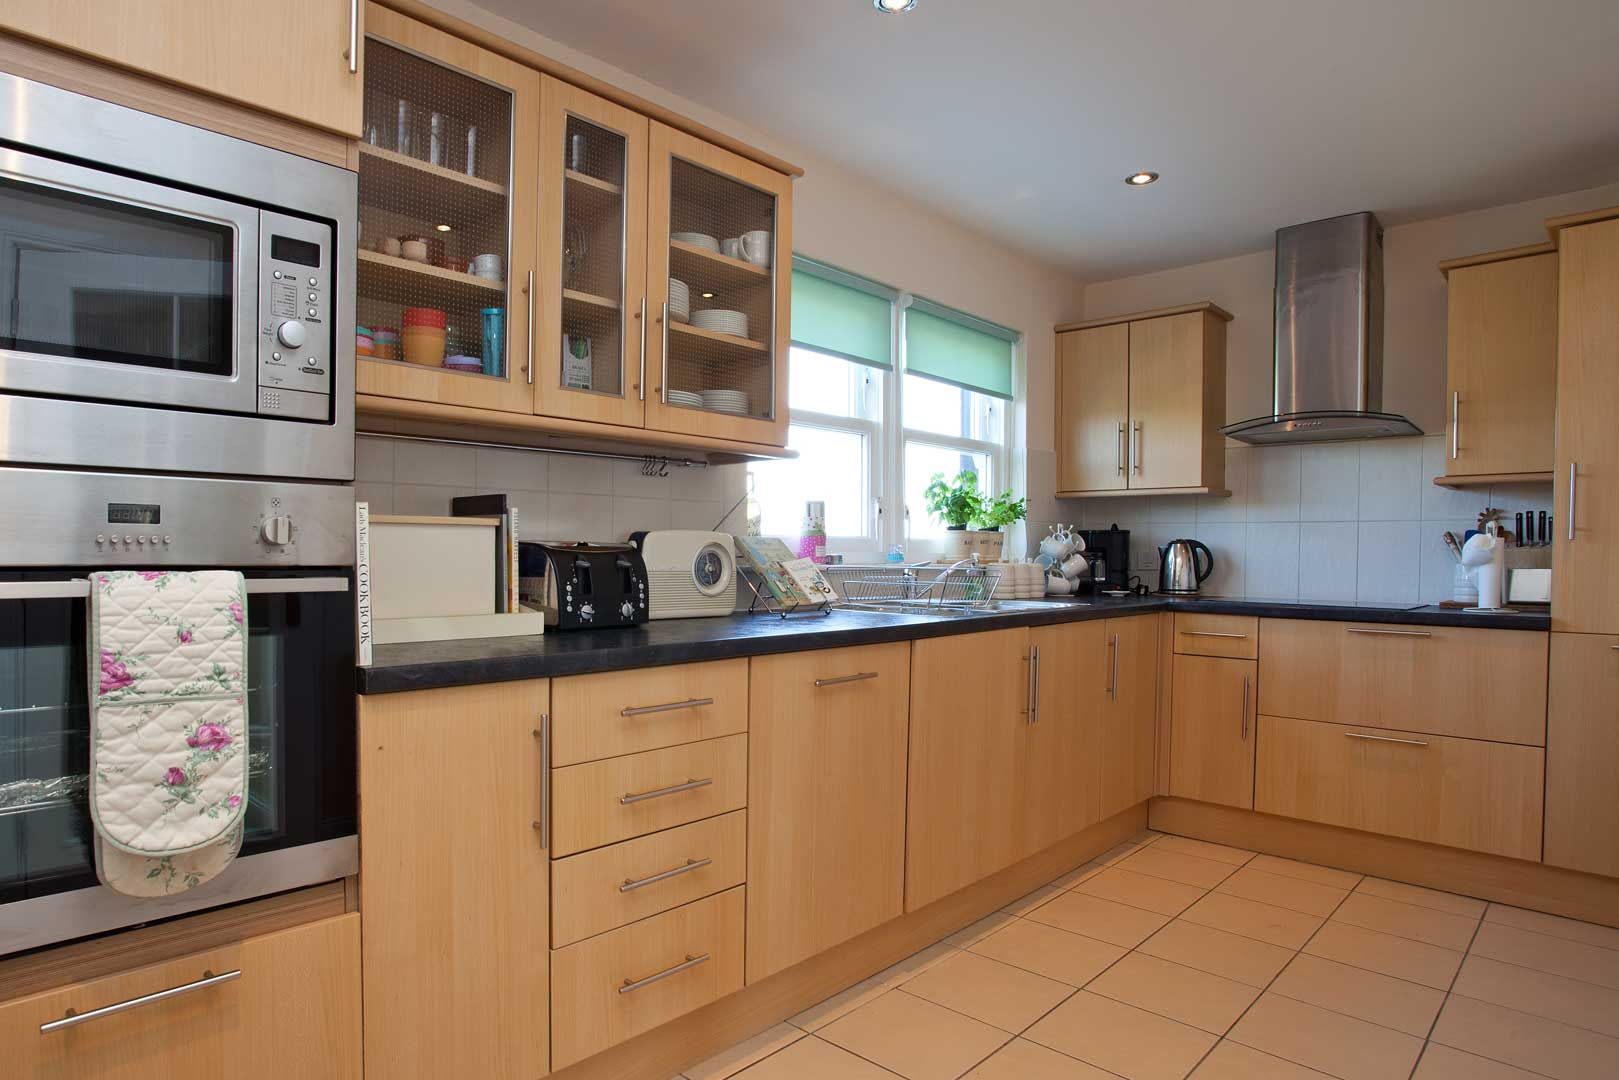 Sanaigmore cottage: superbly equipped kitchen